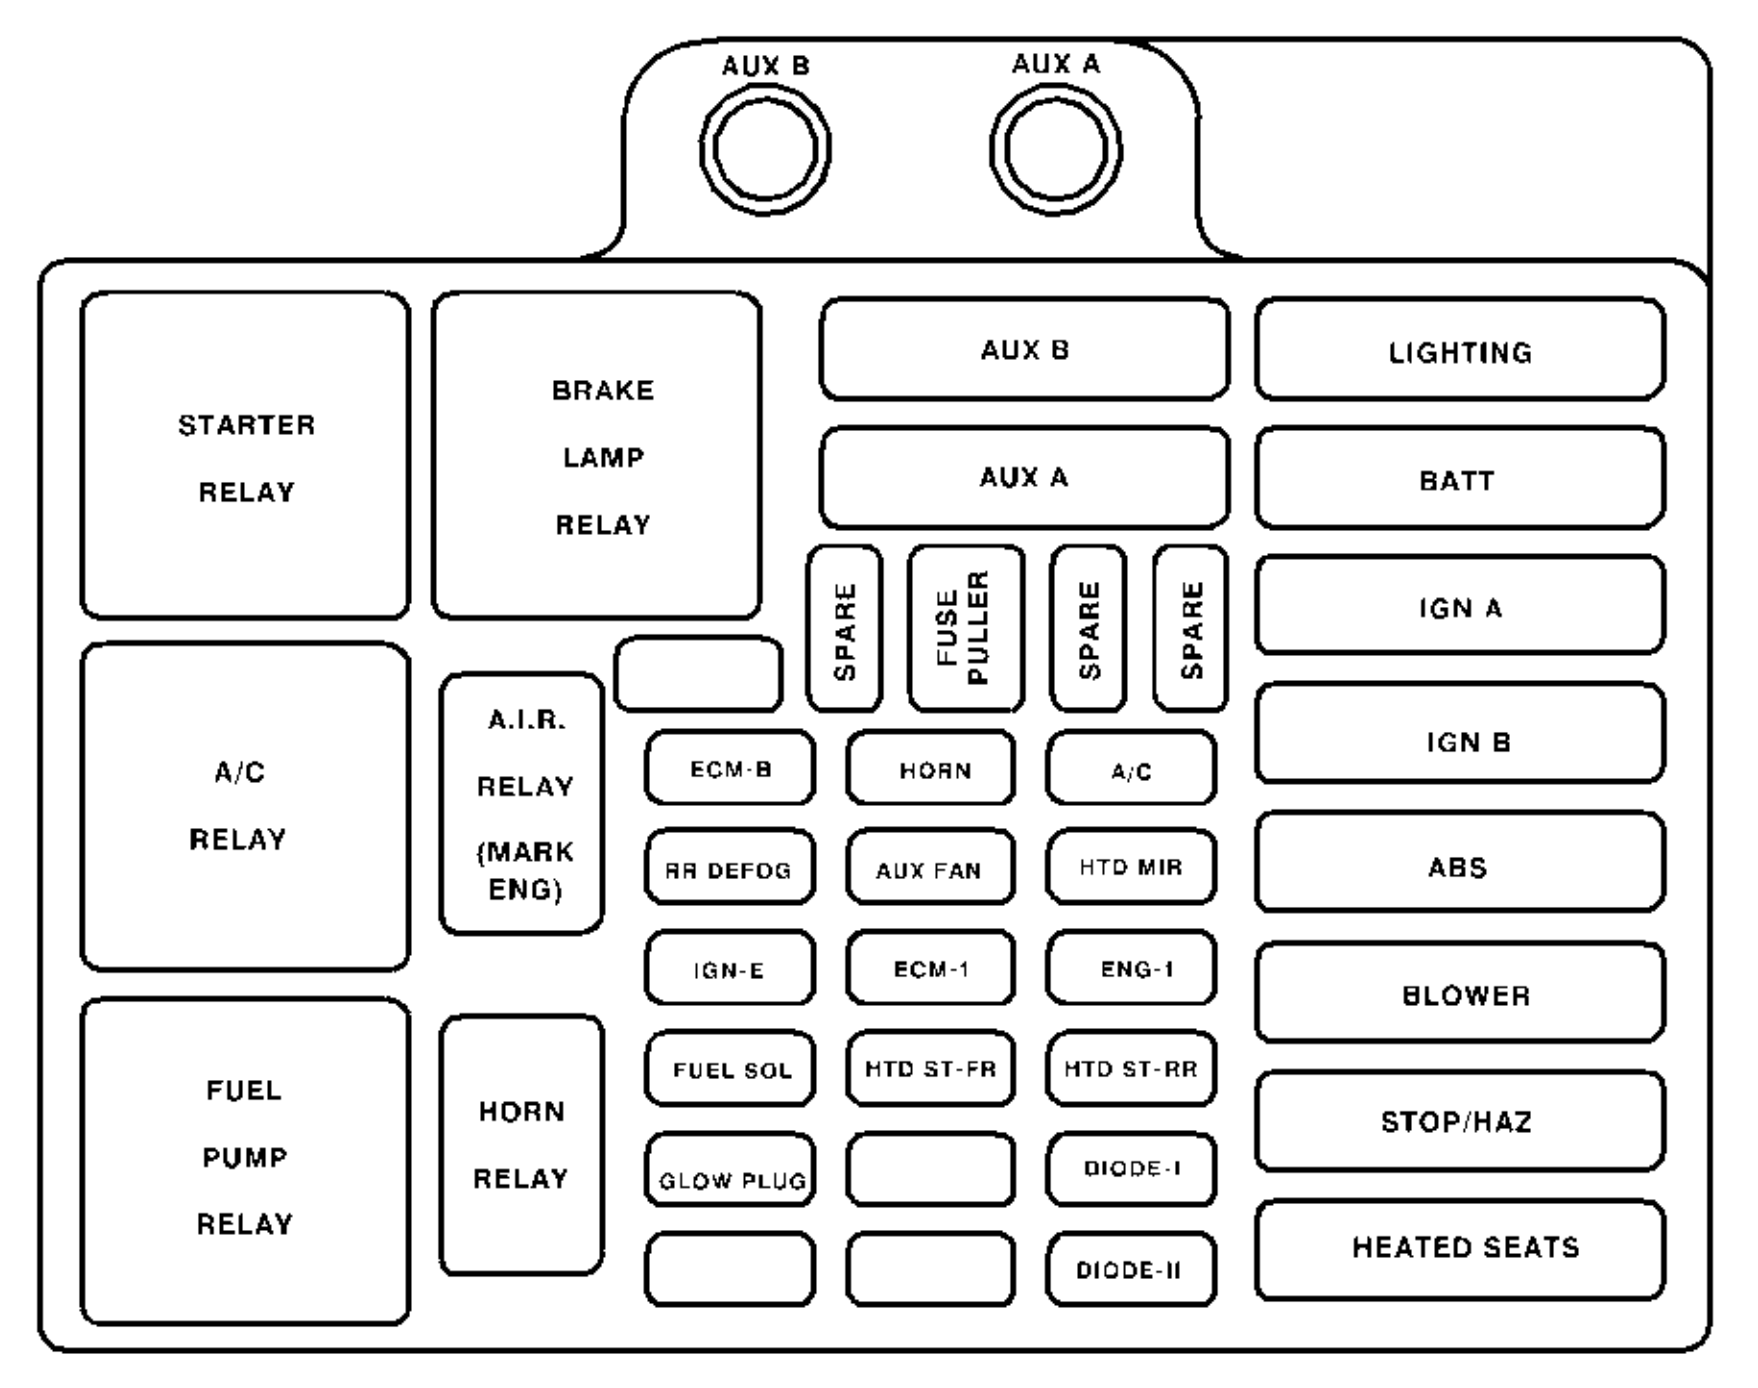 hight resolution of tahoe fuse box wiring wiring diagrams 2005 tahoe fuse box inside